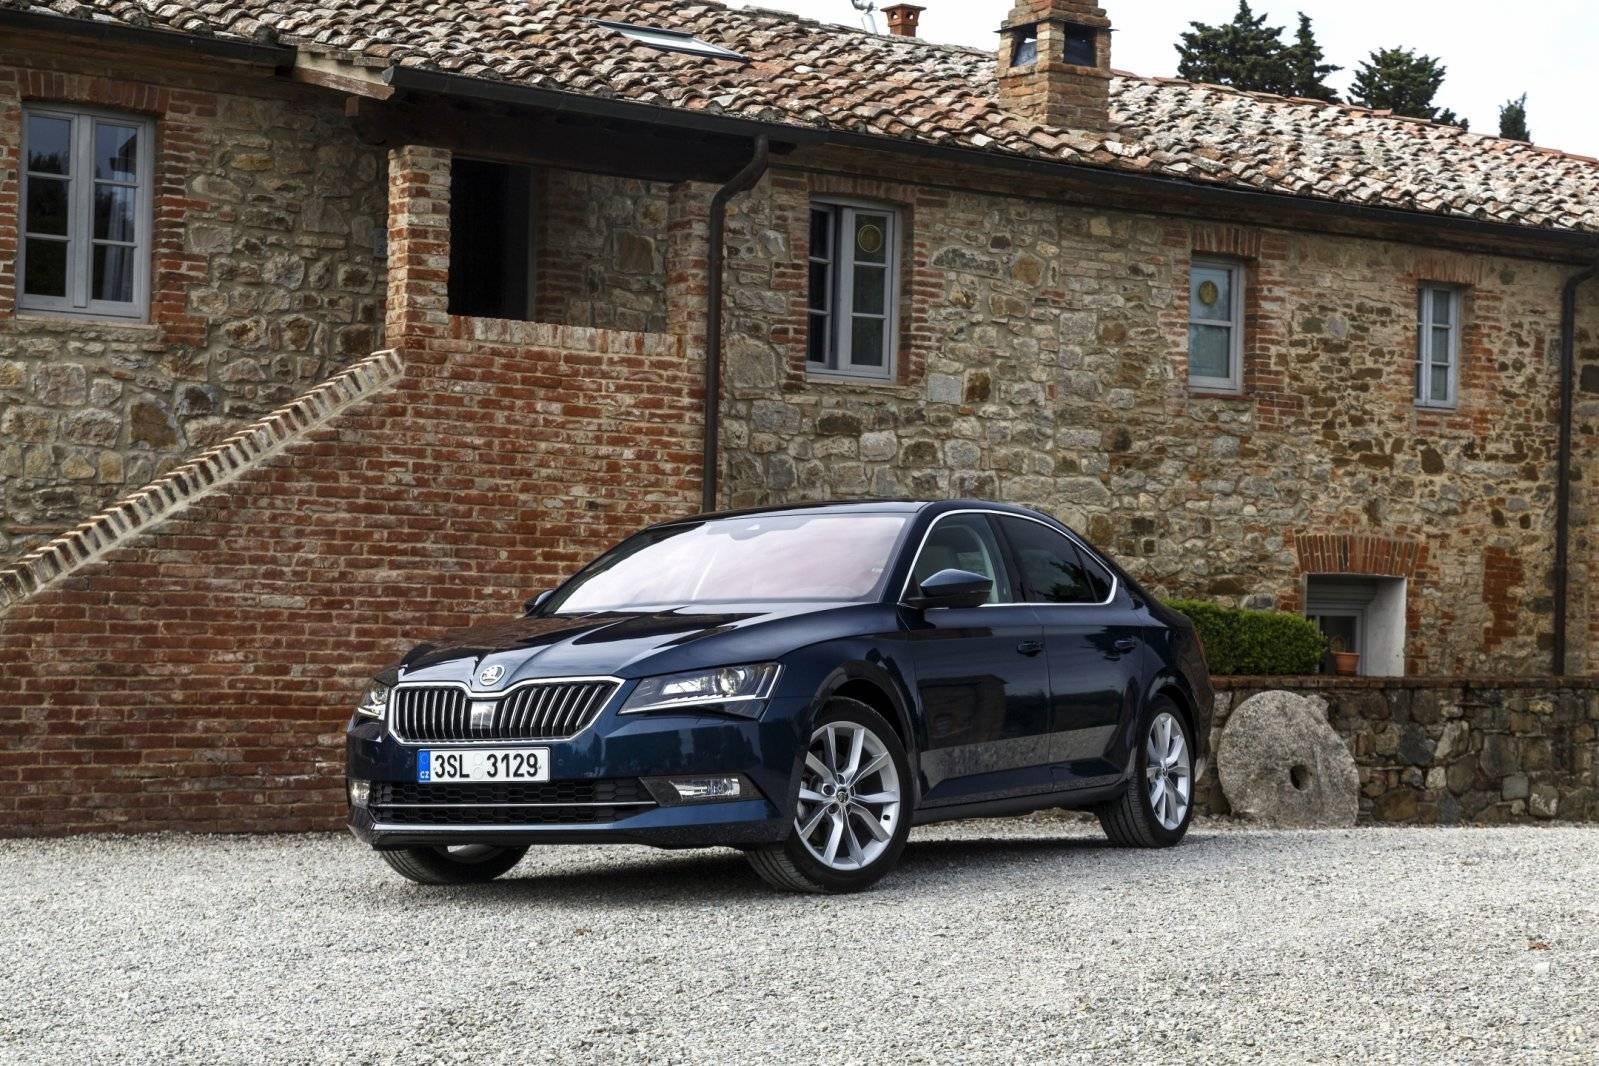 test autotest skoda superb autotests. Black Bedroom Furniture Sets. Home Design Ideas